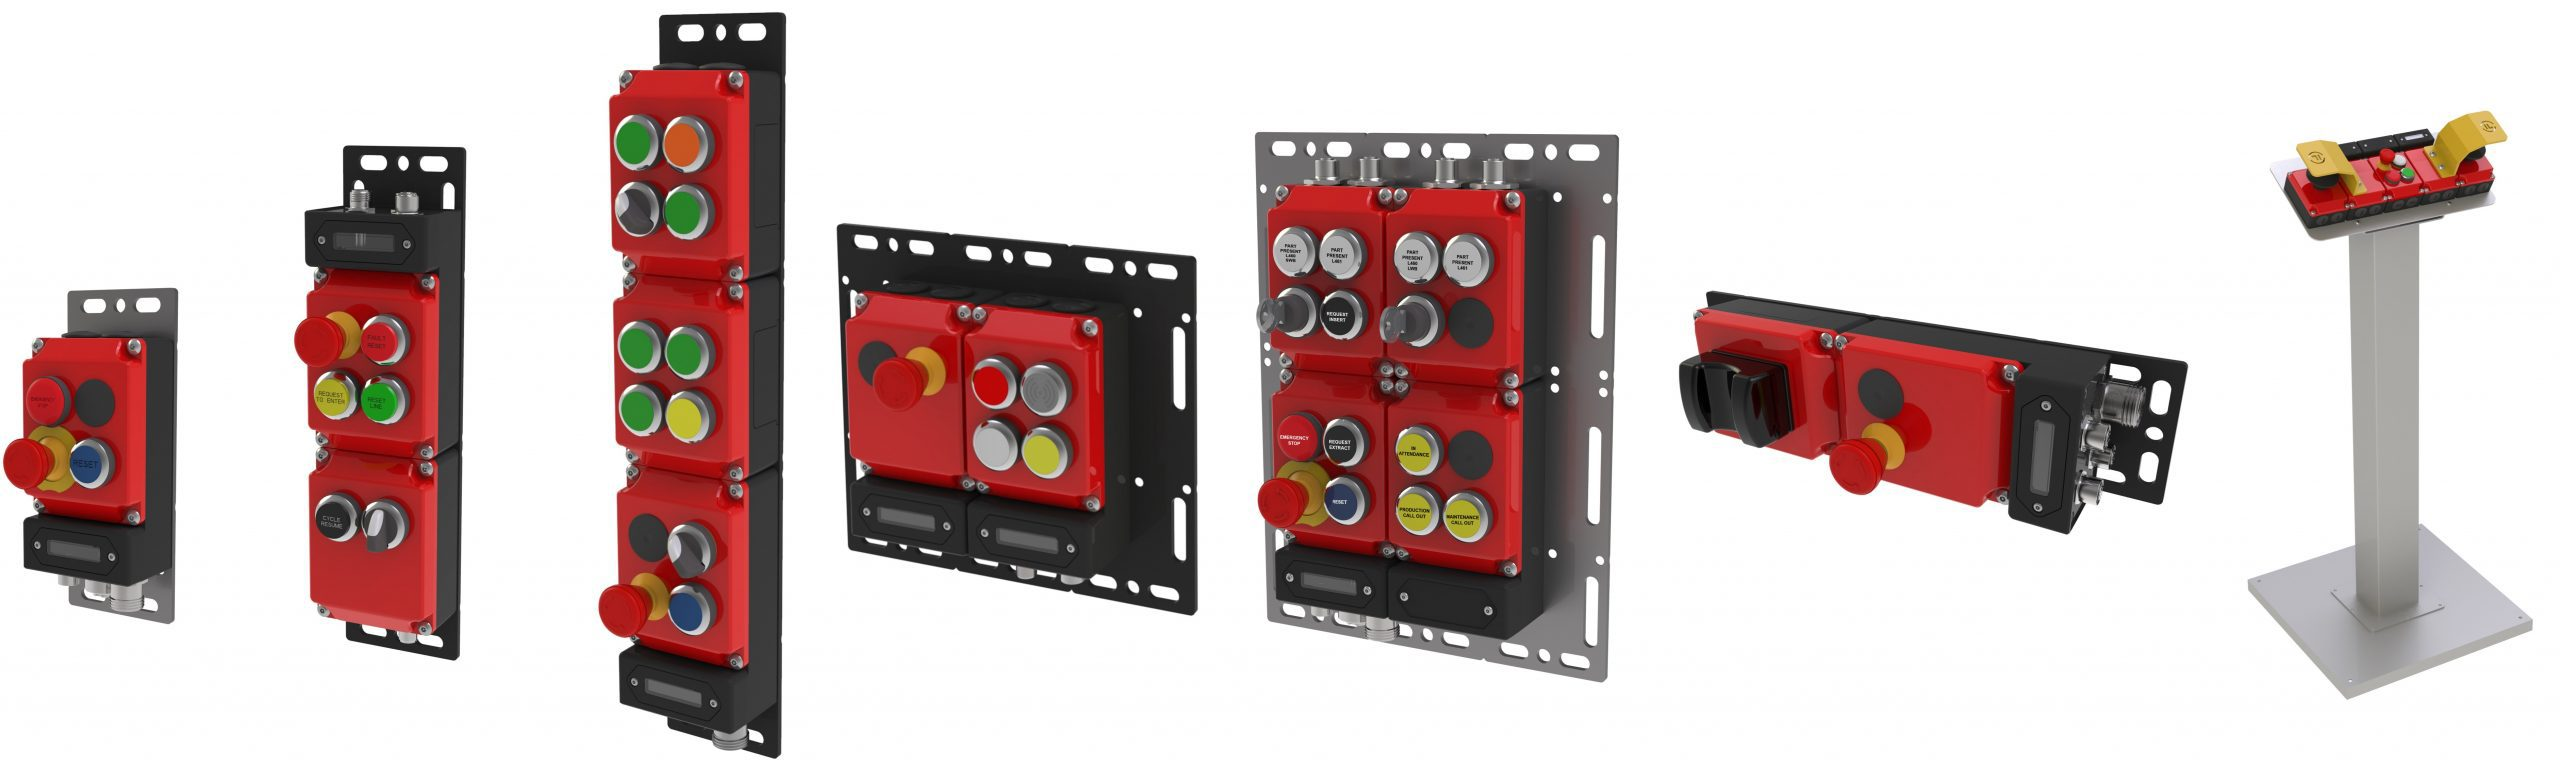 Push Button Control Examples